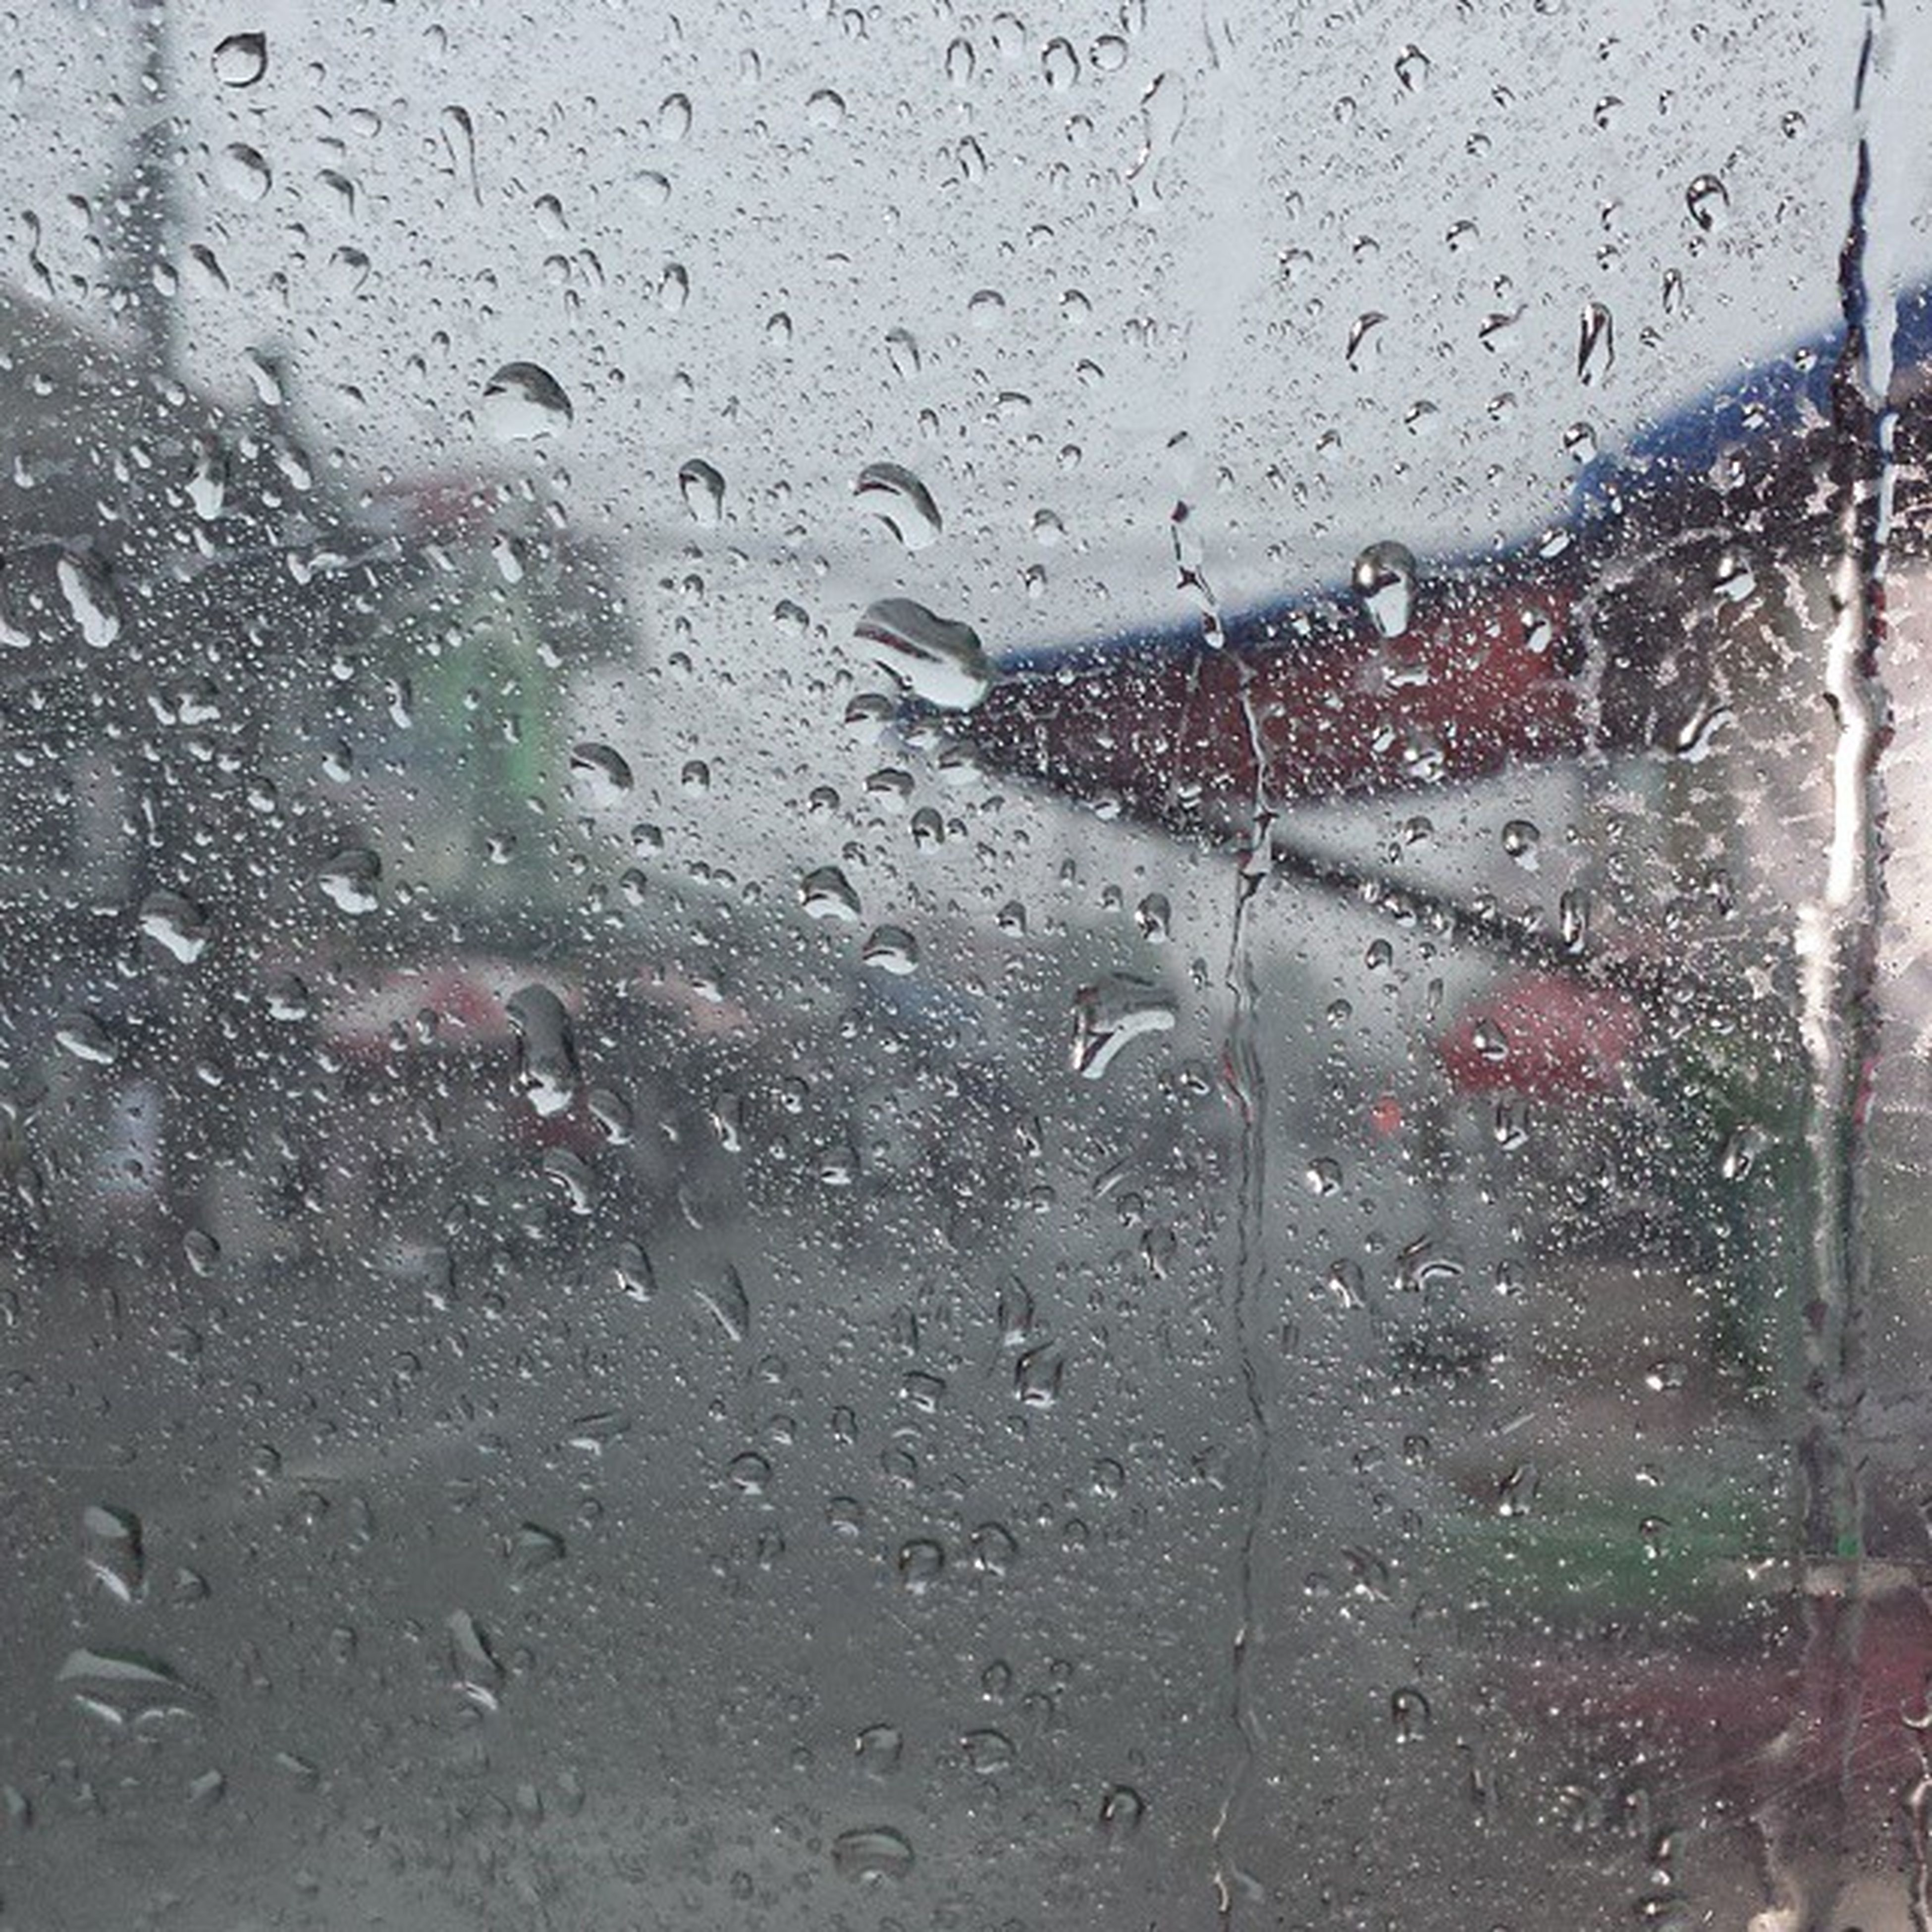 drop, window, wet, transparent, glass - material, rain, indoors, water, raindrop, weather, season, glass, car, full frame, vehicle interior, close-up, transportation, backgrounds, focus on foreground, water drop